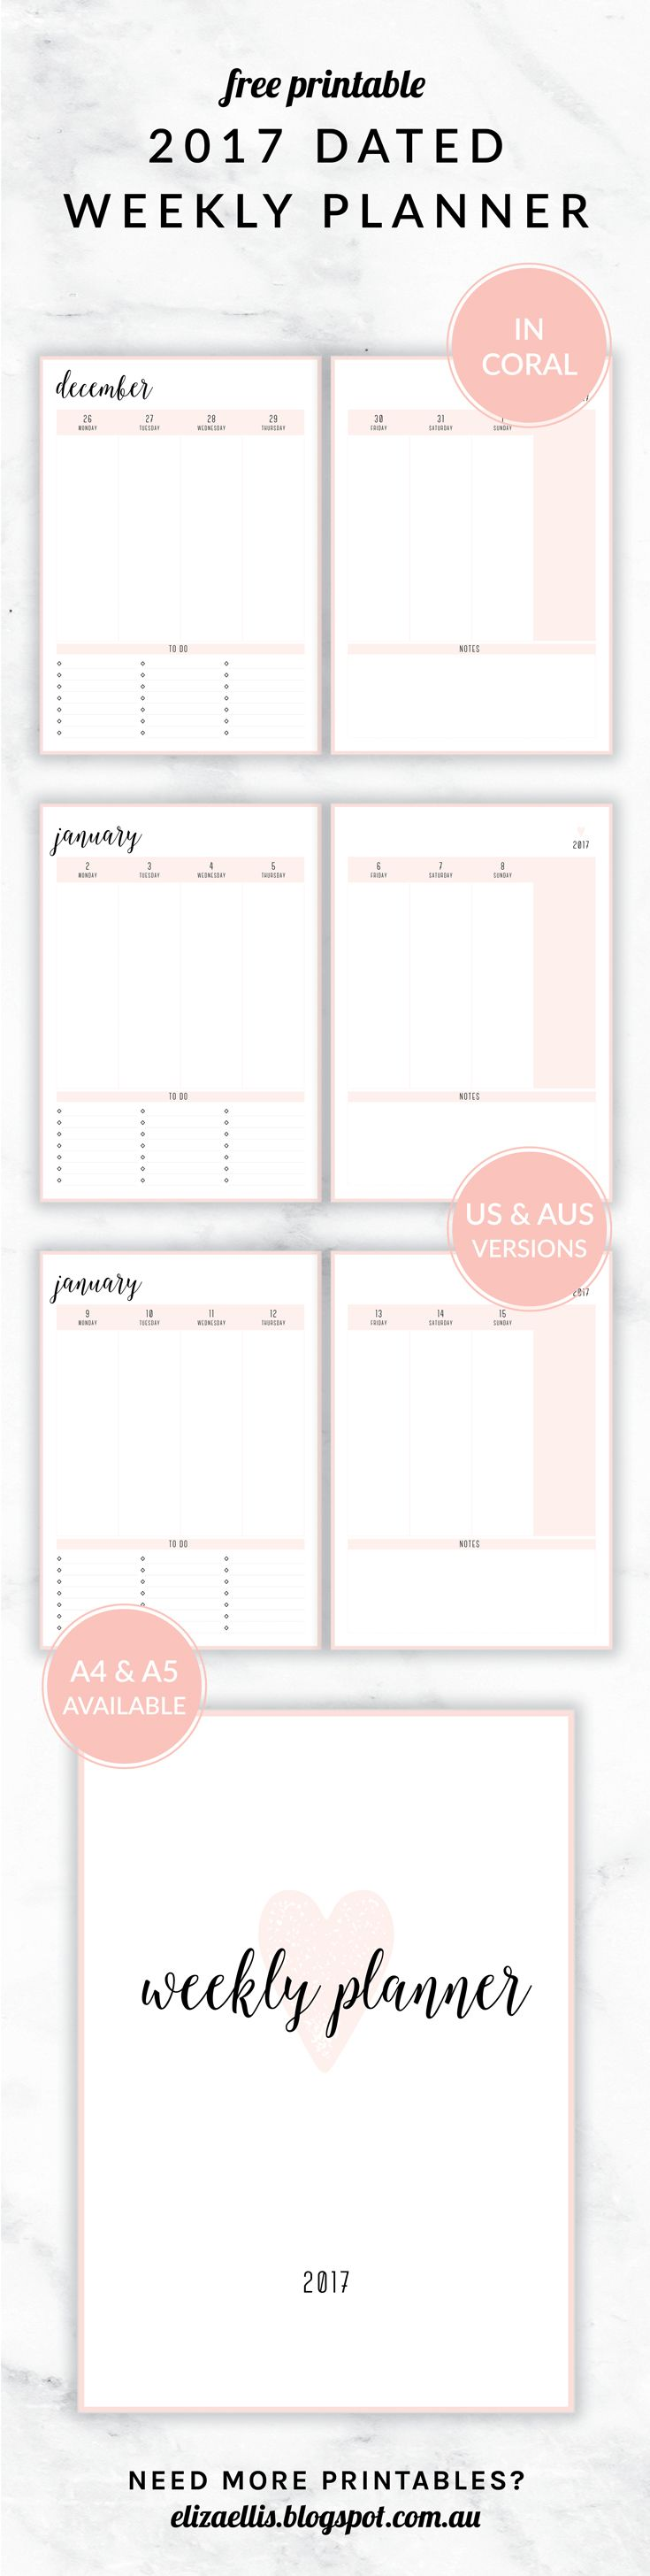 My Calendar Planner : Best ideas about weekly planner printable on pinterest